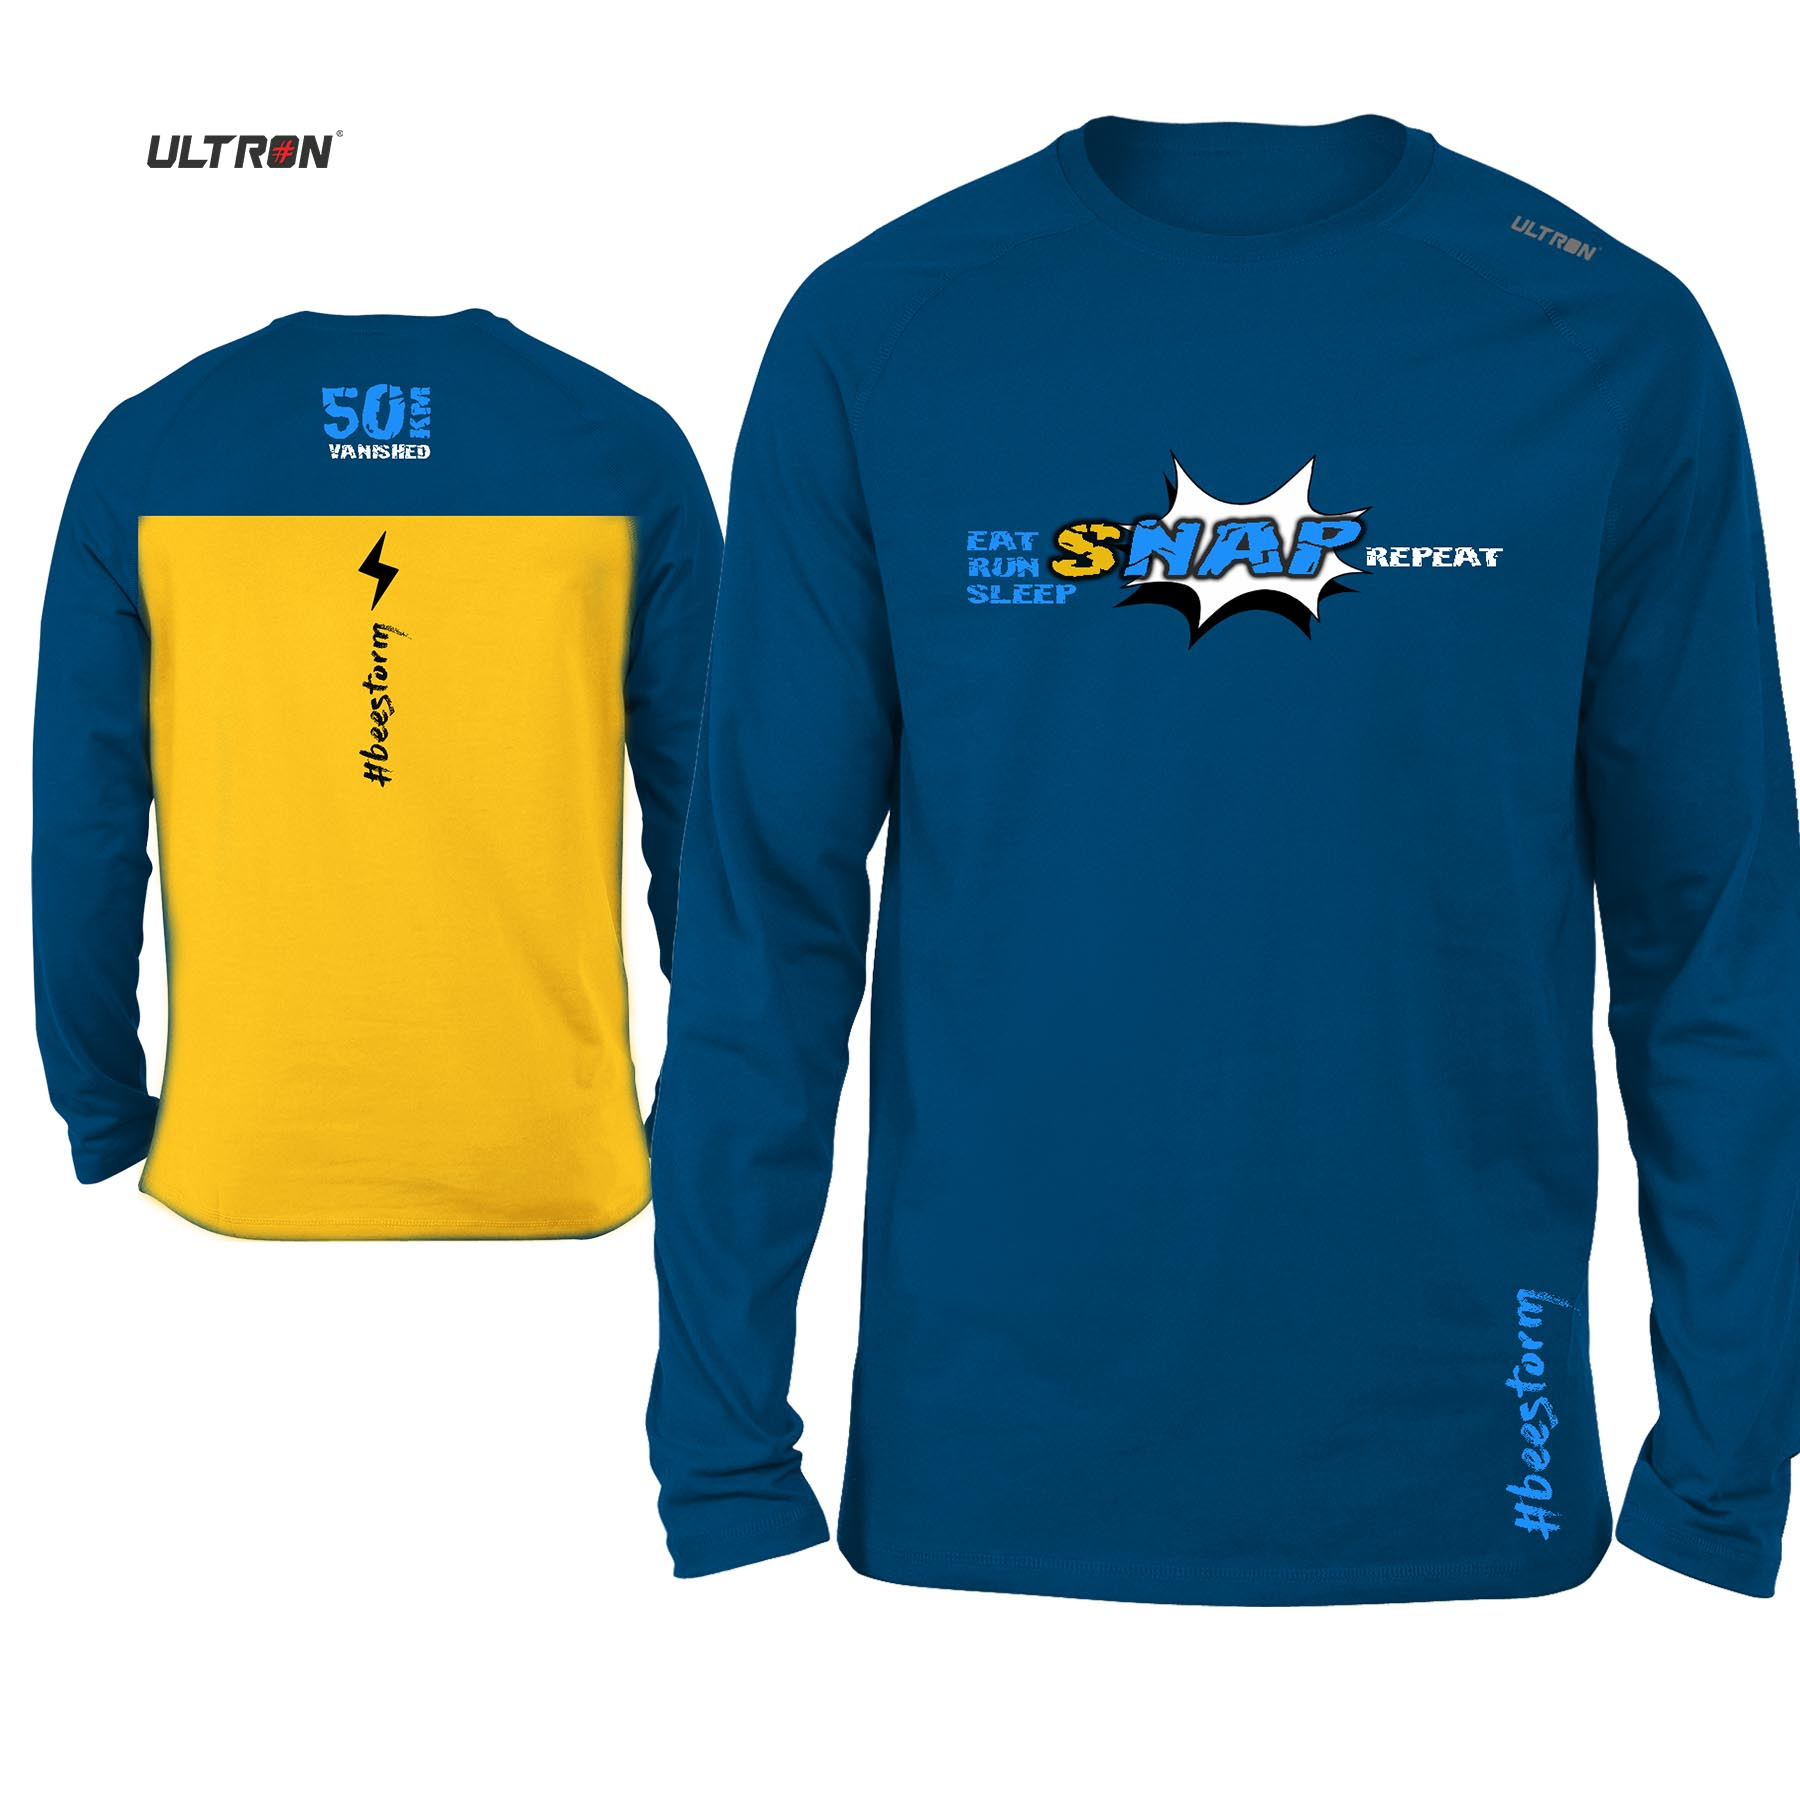 NEW : SNAP (Long Sleeves)